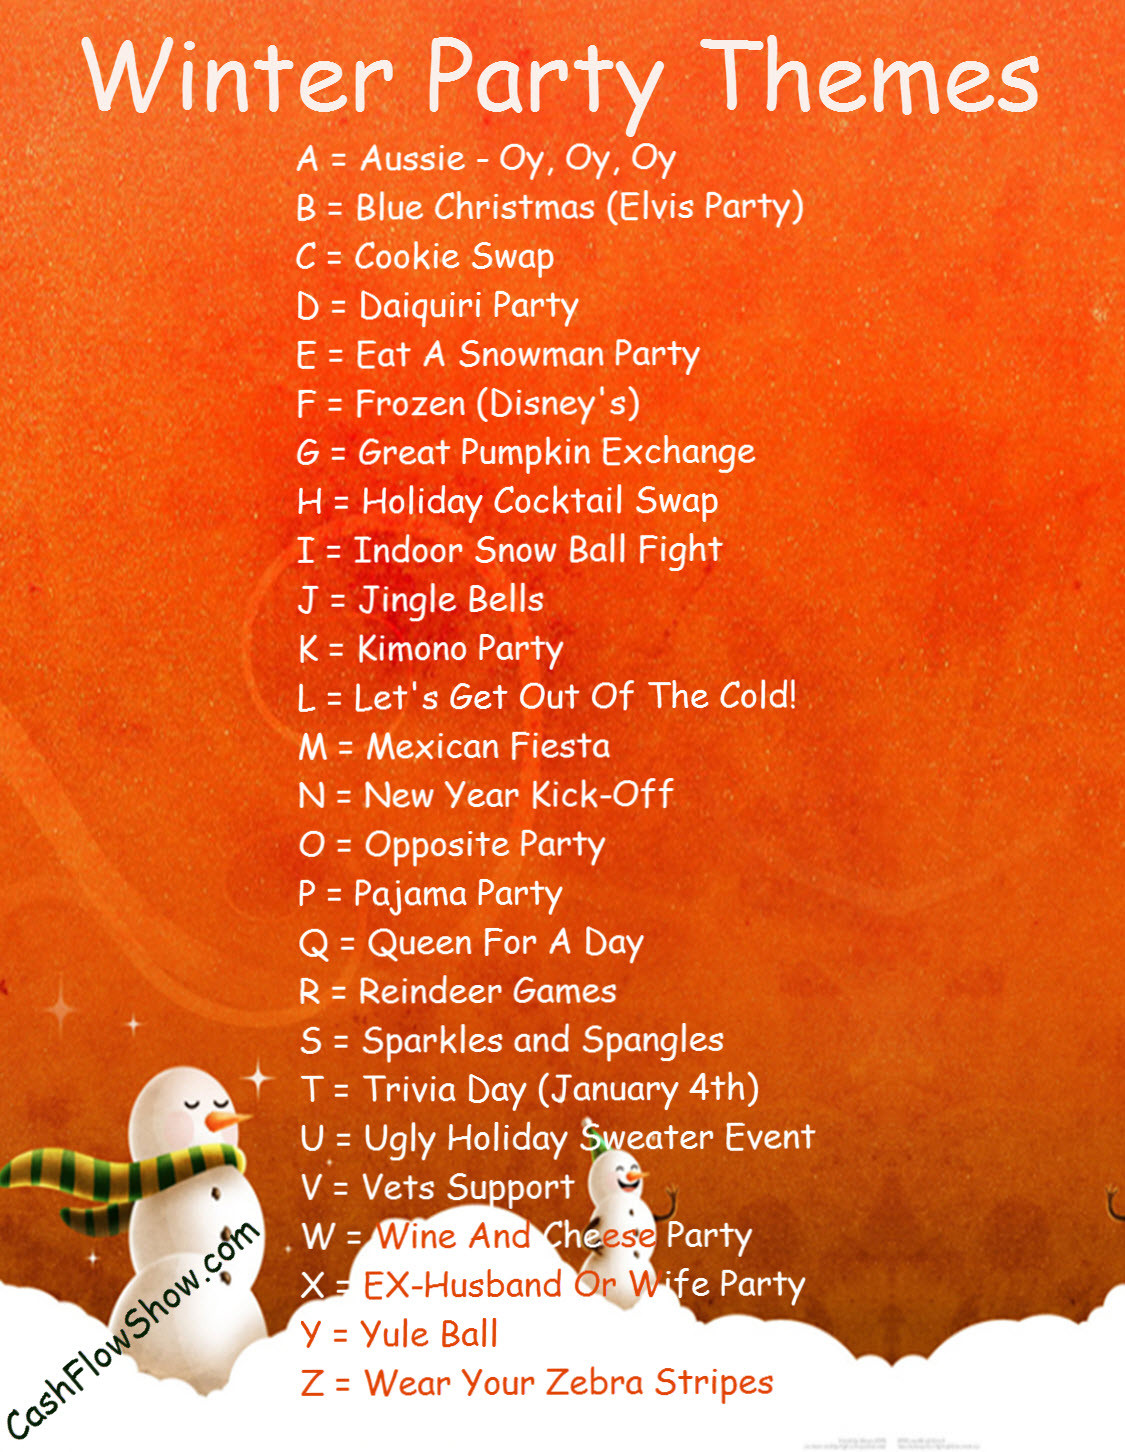 Christmas Party Name Ideas  Read A Z List To Find A Winter Party Theme For Your Event